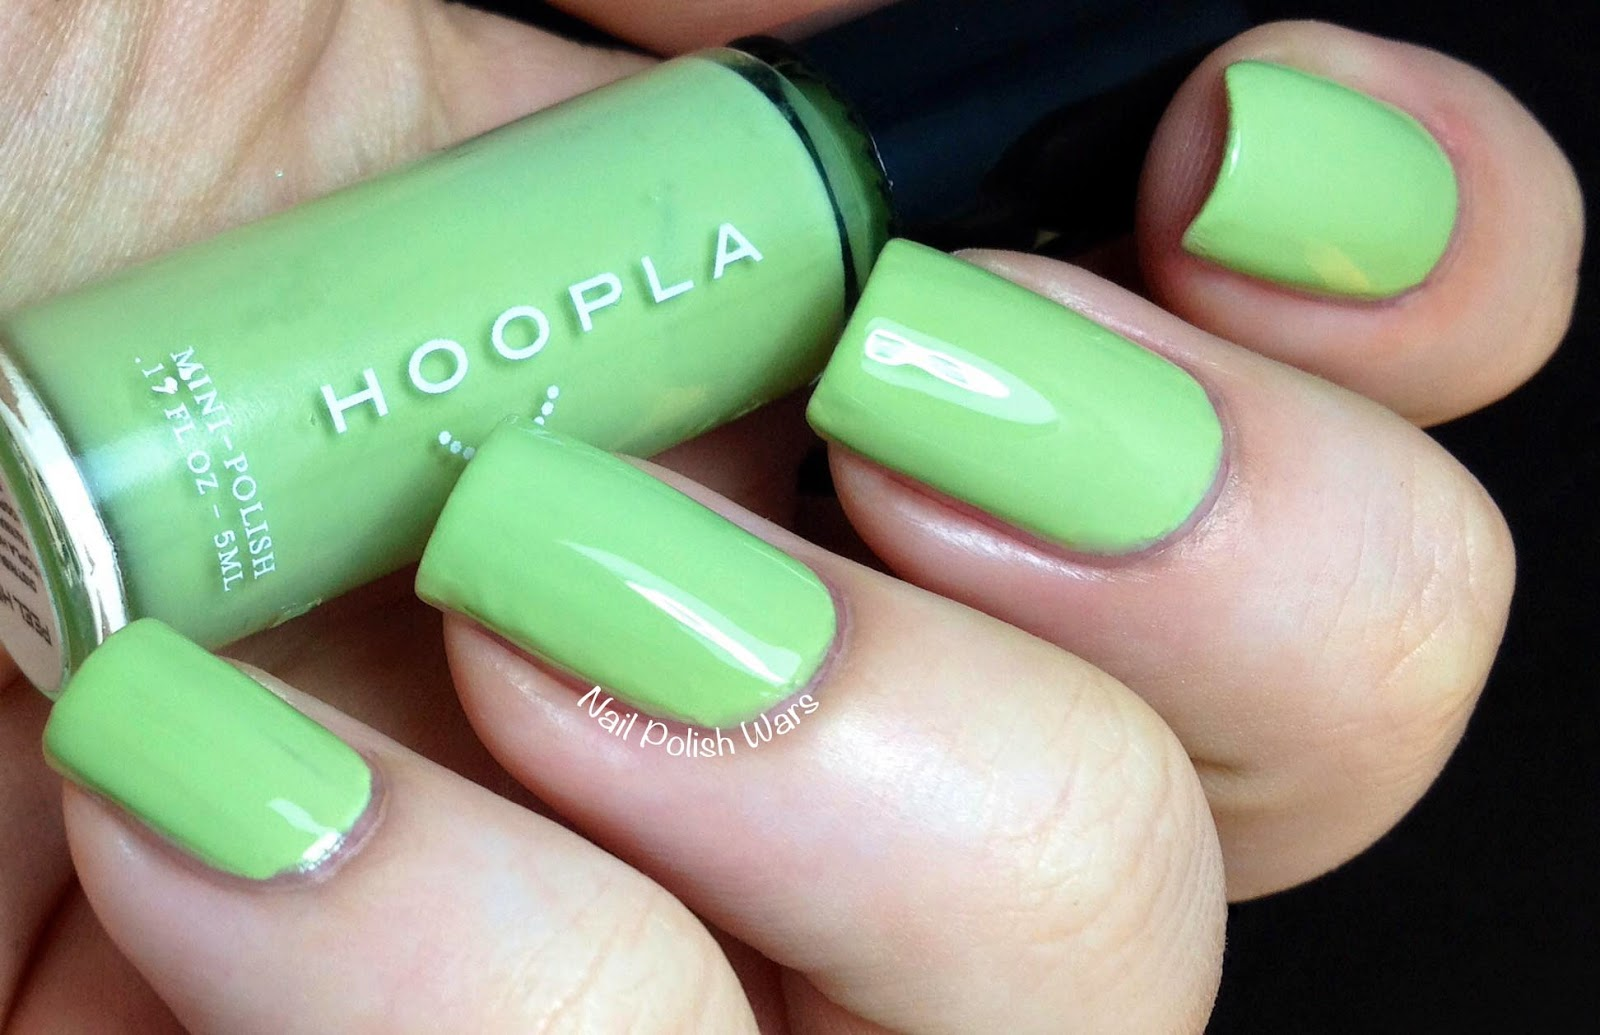 Hoopla Polish